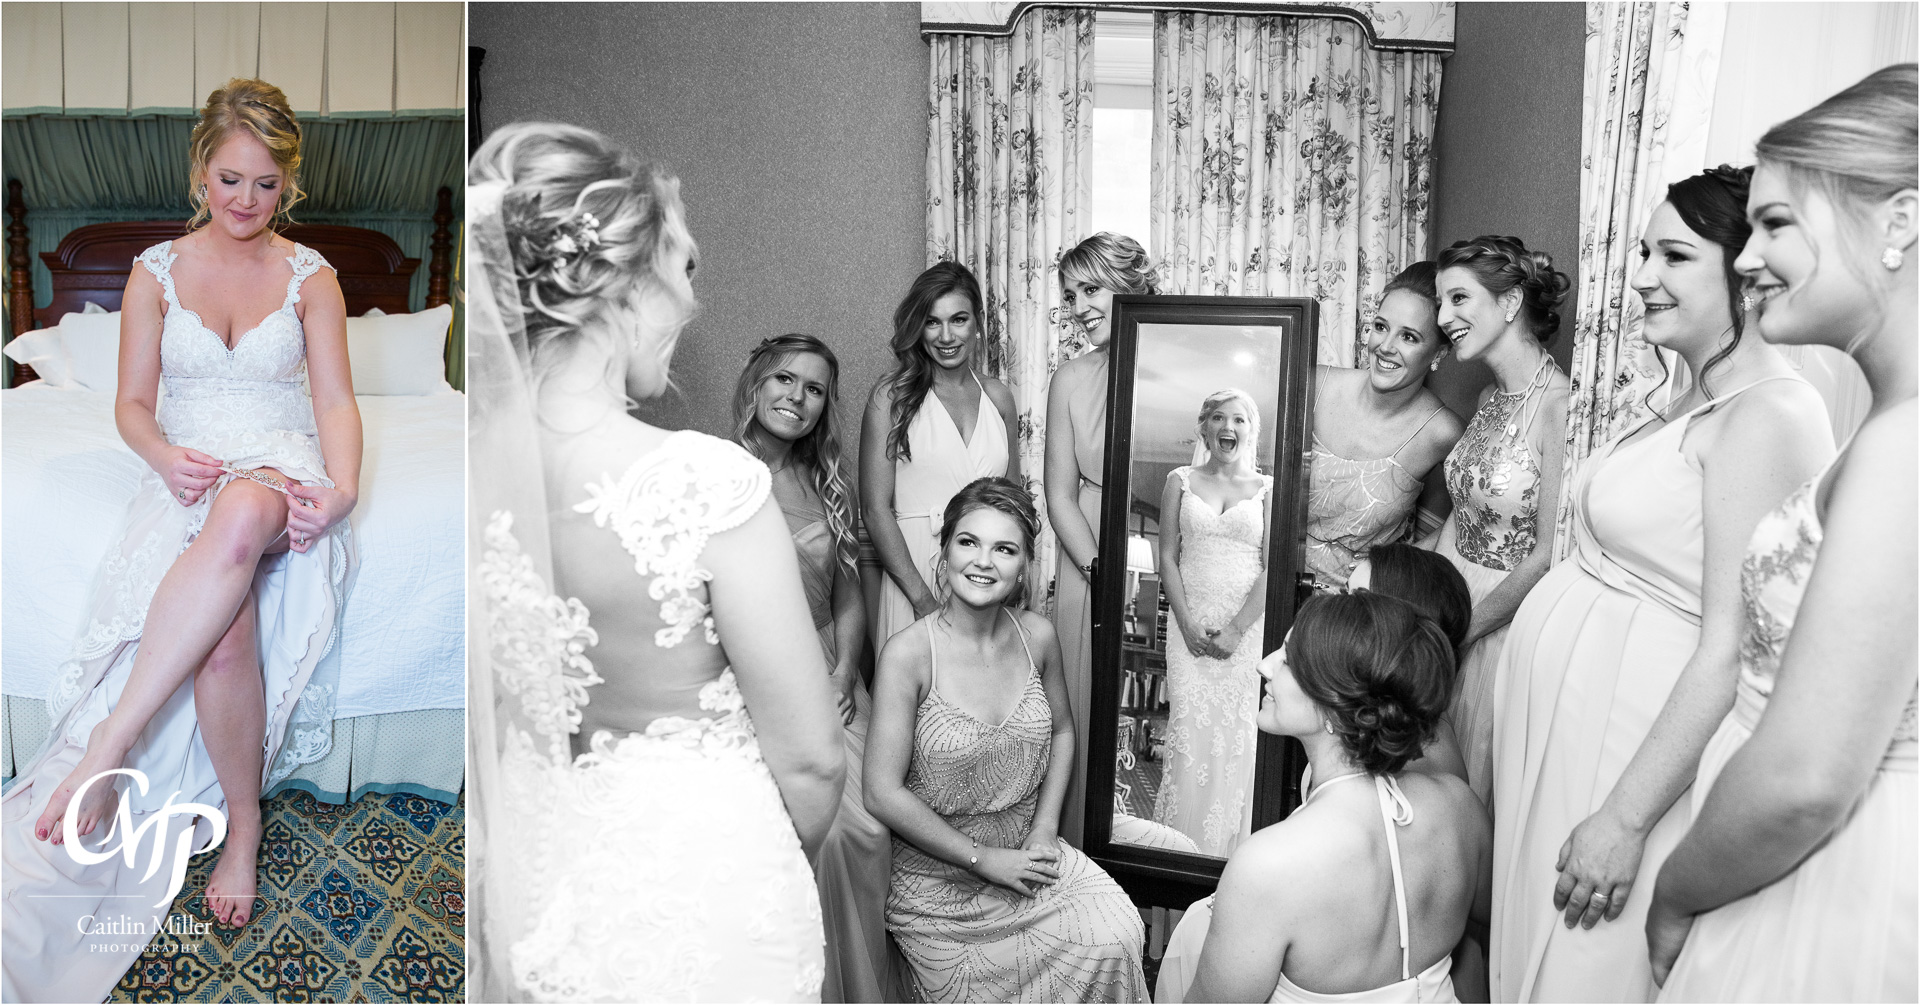 dorey-5.jpg from Katelyn and Nathan's wedding at the Inn at Erlowest in Lake George by Saratoga Wedding Photographer Caitlin Miller Photography. Lake George Wedding Photographer. Adirondack wedding photographer. Albany wedding photographer. Lake Placid Wedding Photographer. Saratoga Wedding Photographer